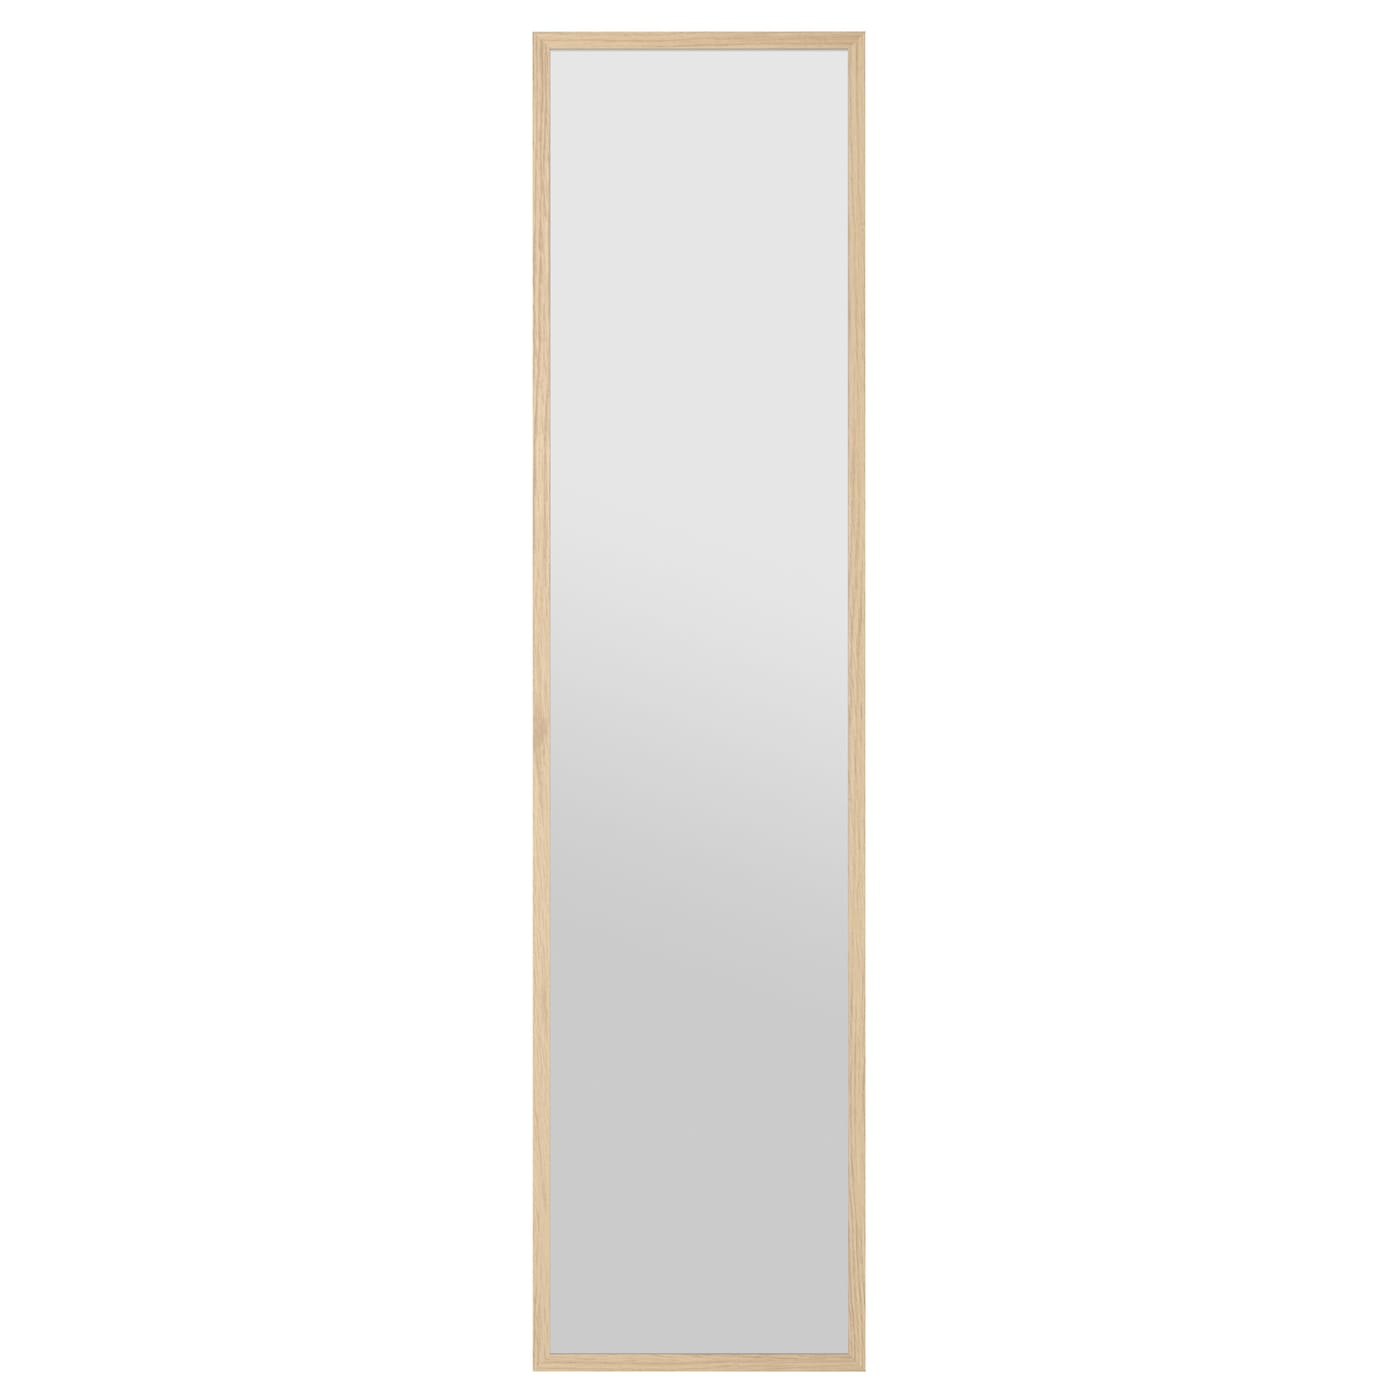 Stave mirror white stained oak effect 40x160 cm ikea for Miroir 140 x 100